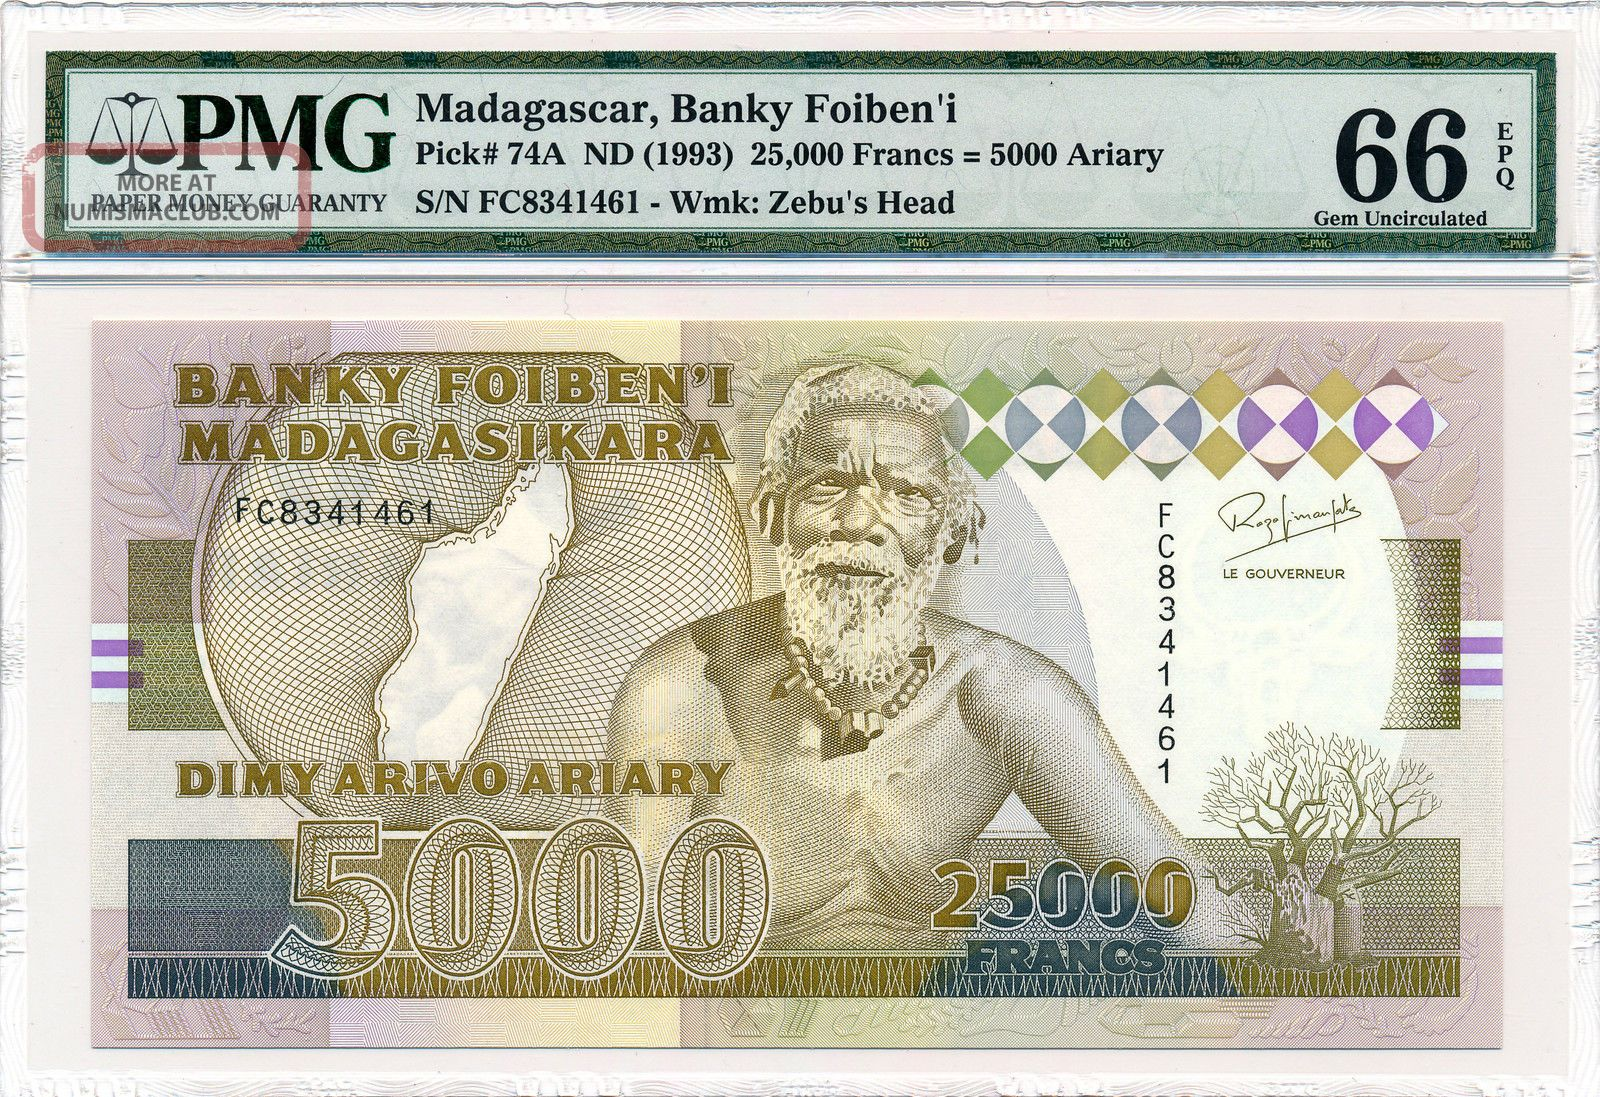 Banky Foiben ' I Madagascar 25000 Francs Nd (1993) Pmg 66epq Africa photo